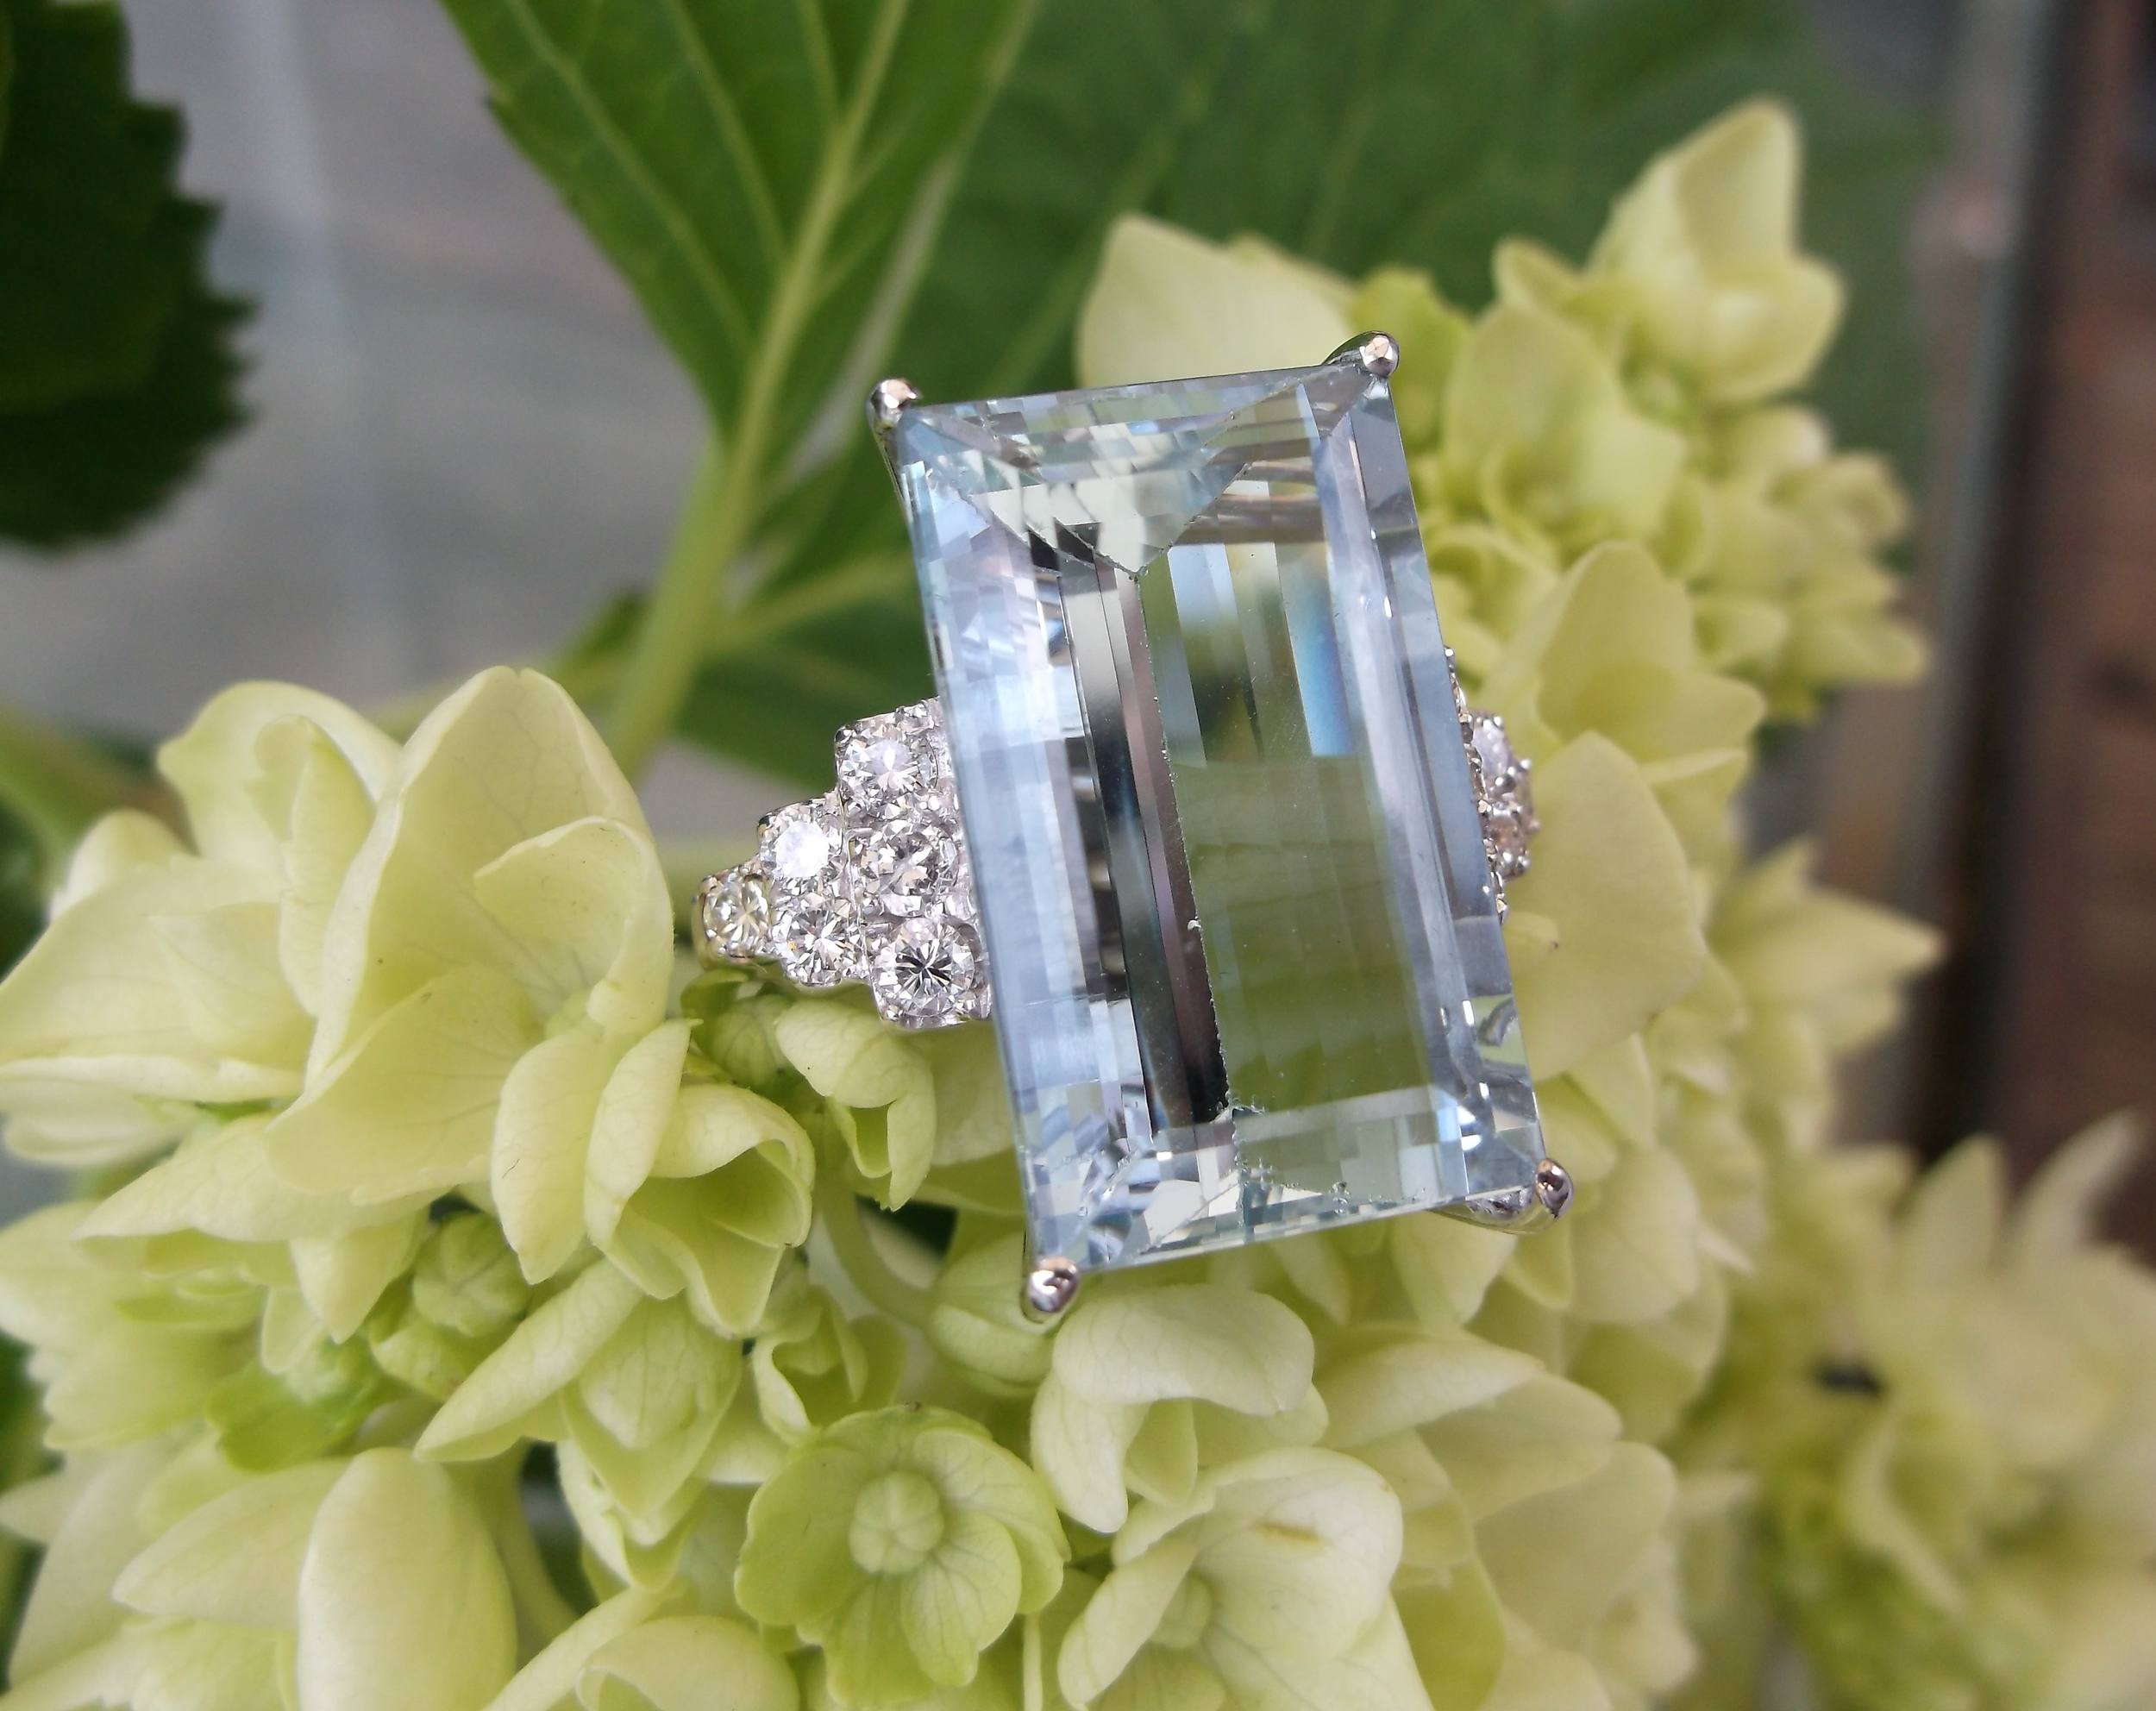 SOLD - Stunning 18.10 carat aquamarine set in an 18K white gold mounting with 0.75 carats total weight in diamonds.